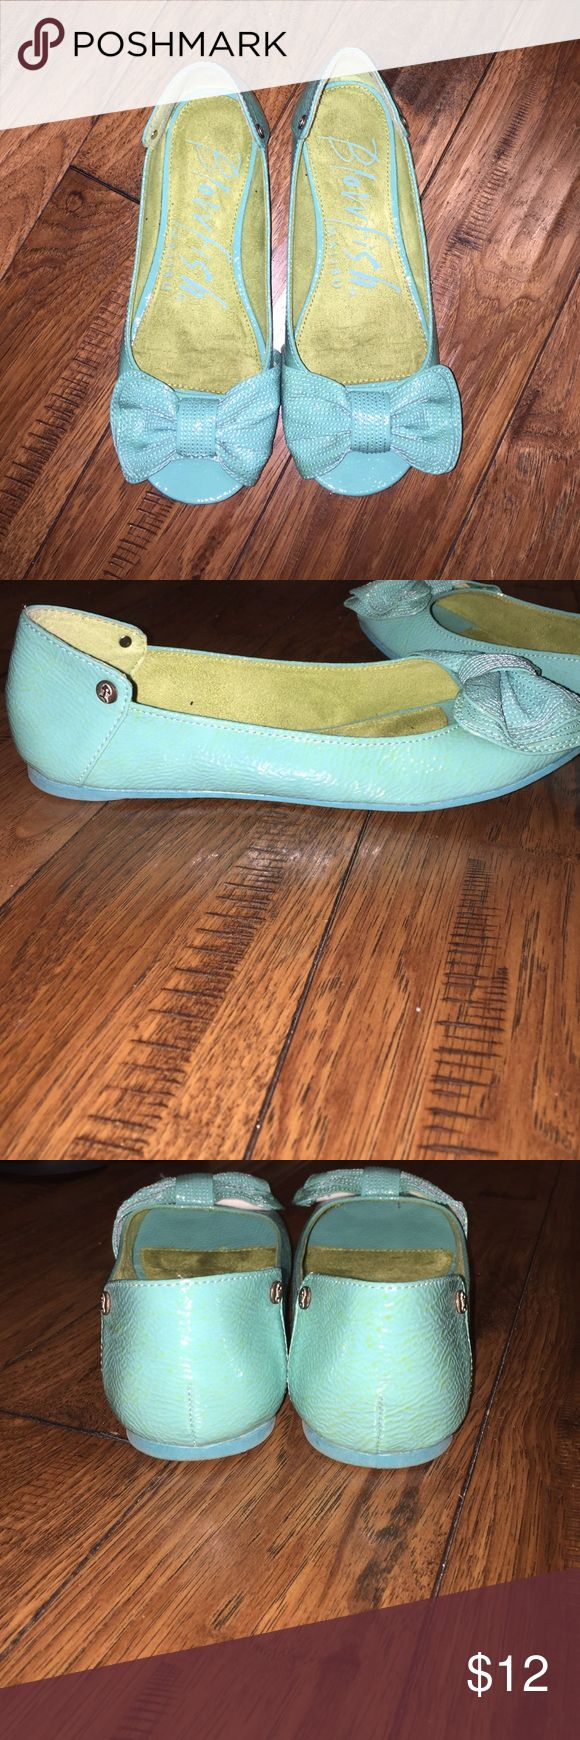 WORN ONCE. Blowfish peep toe flat. WORN ONLY ONCE. Size 7. Peep toe flat. Blowfish. Teal blue. Blowfish Shoes Flats & Loafers